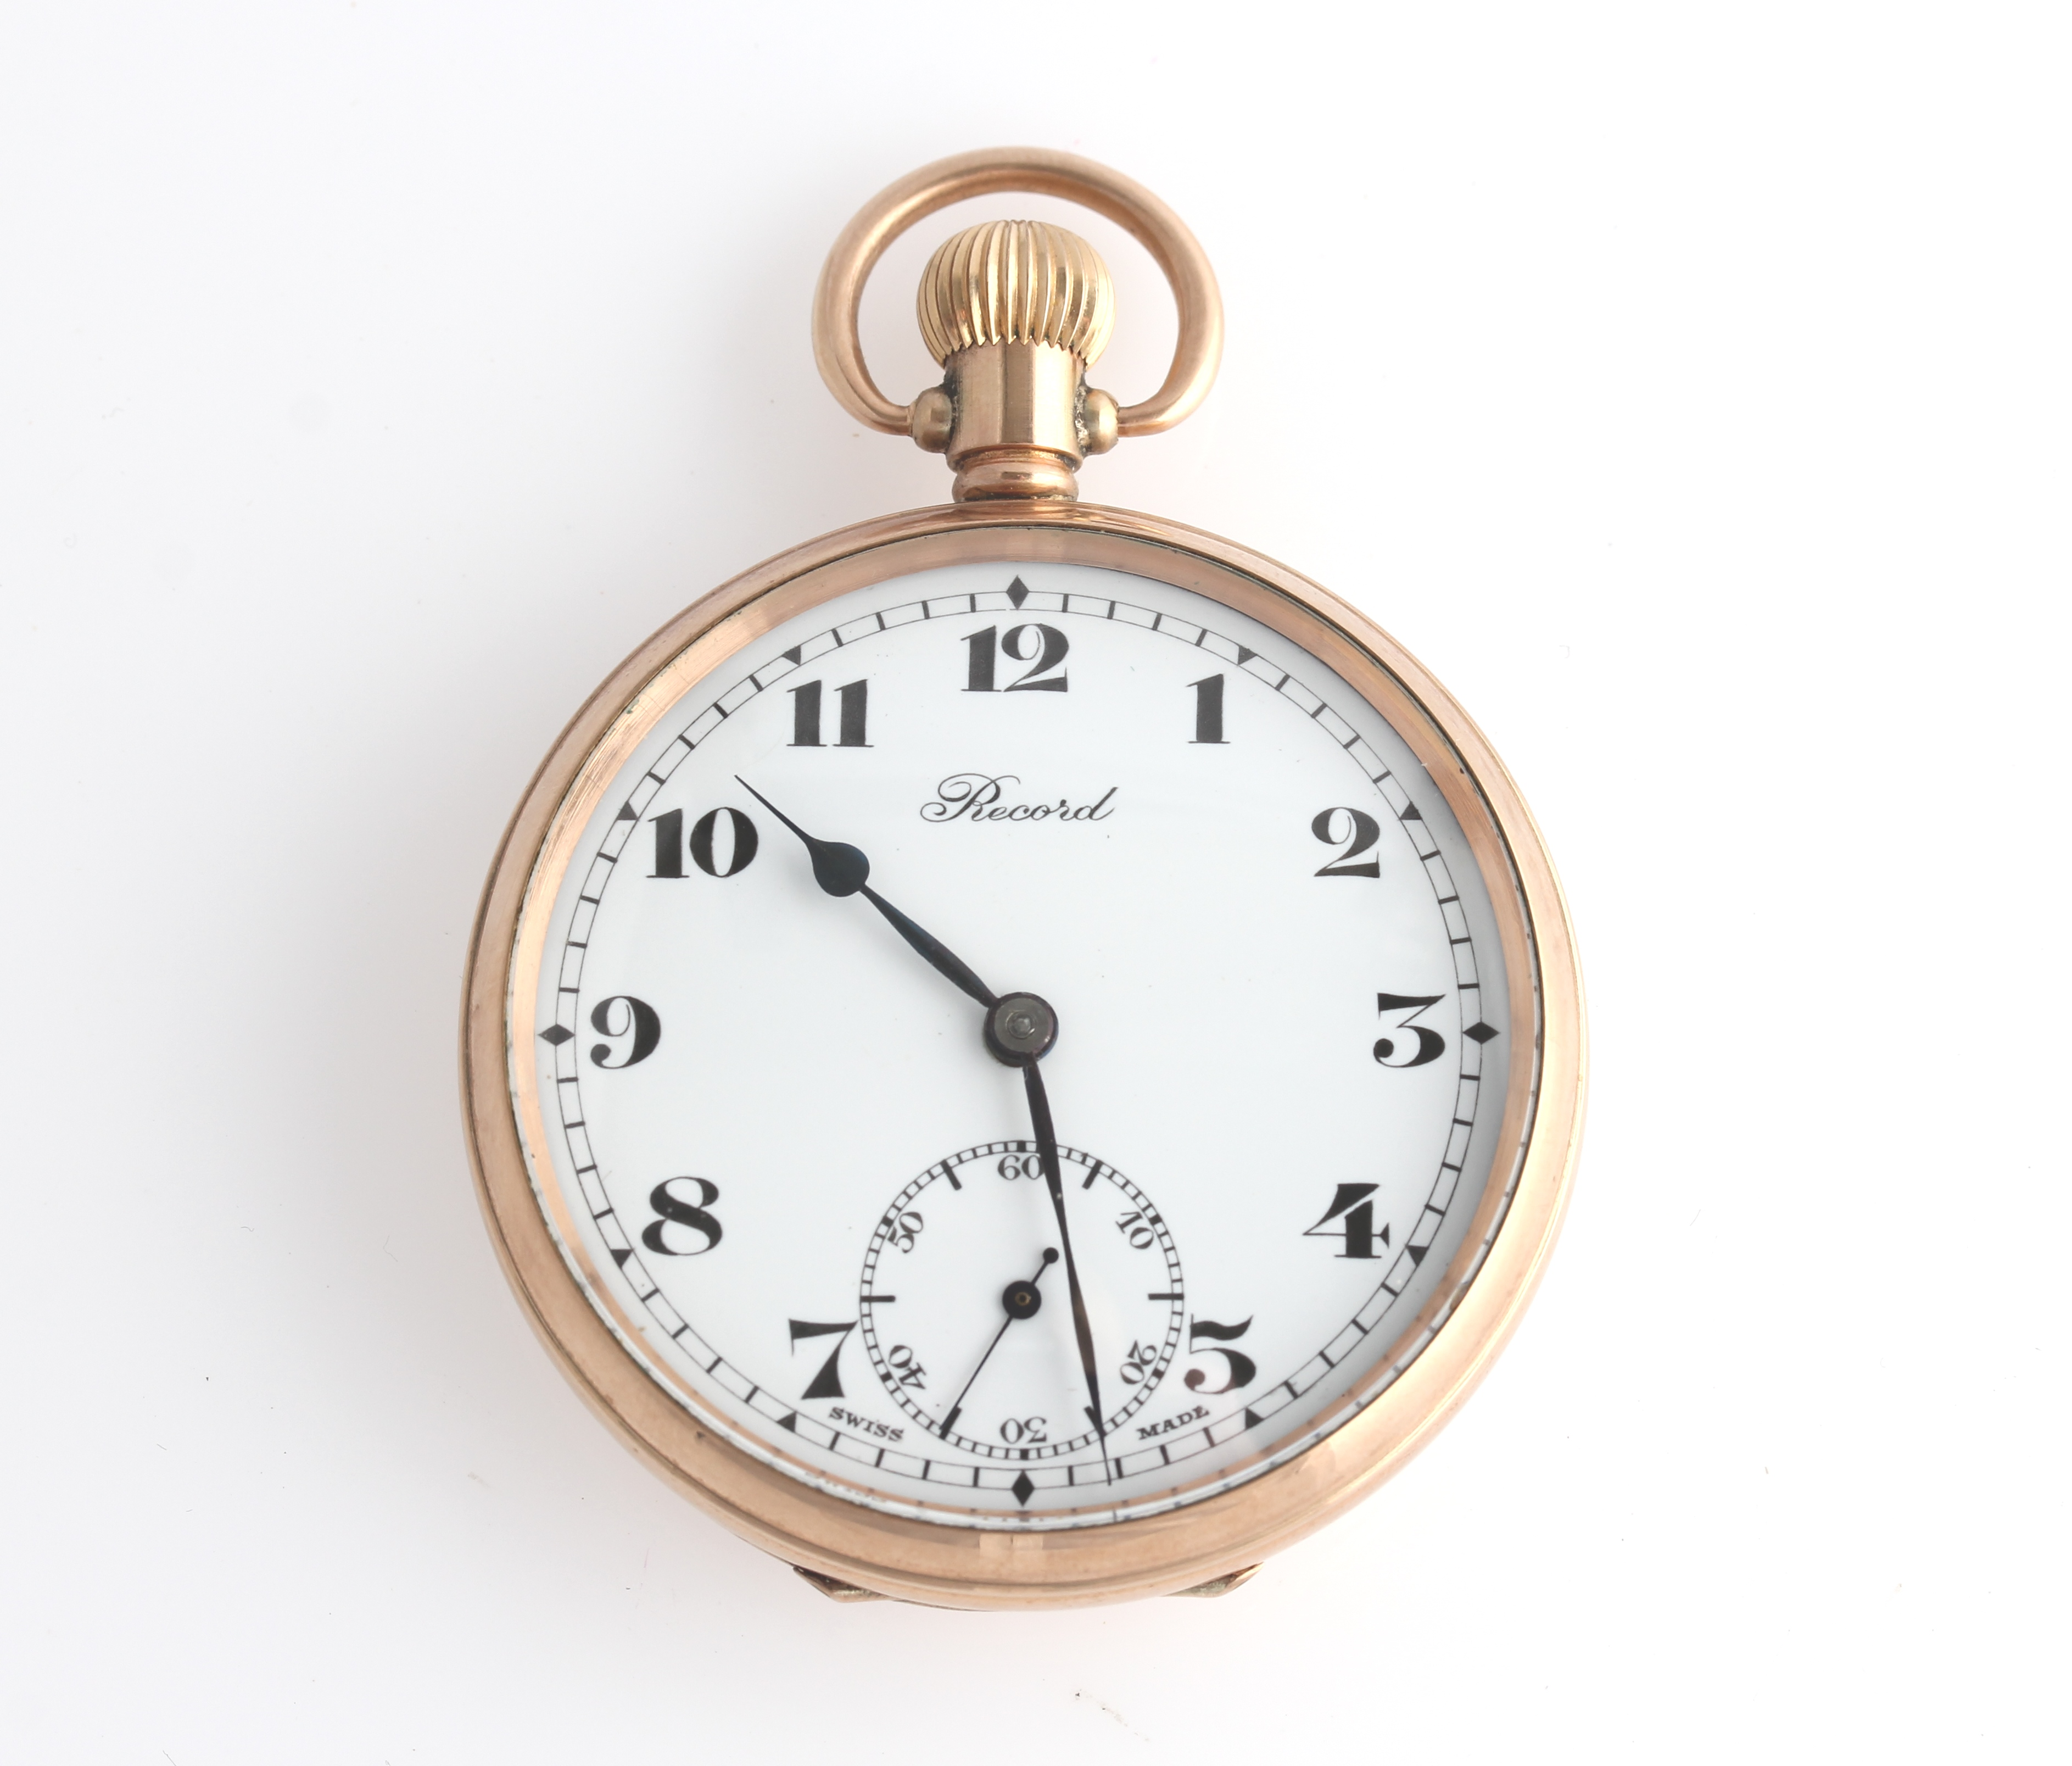 Lot 5 - A 9ct yellow gold cased Record open face crown wind pocket watch, the white enamel dial having